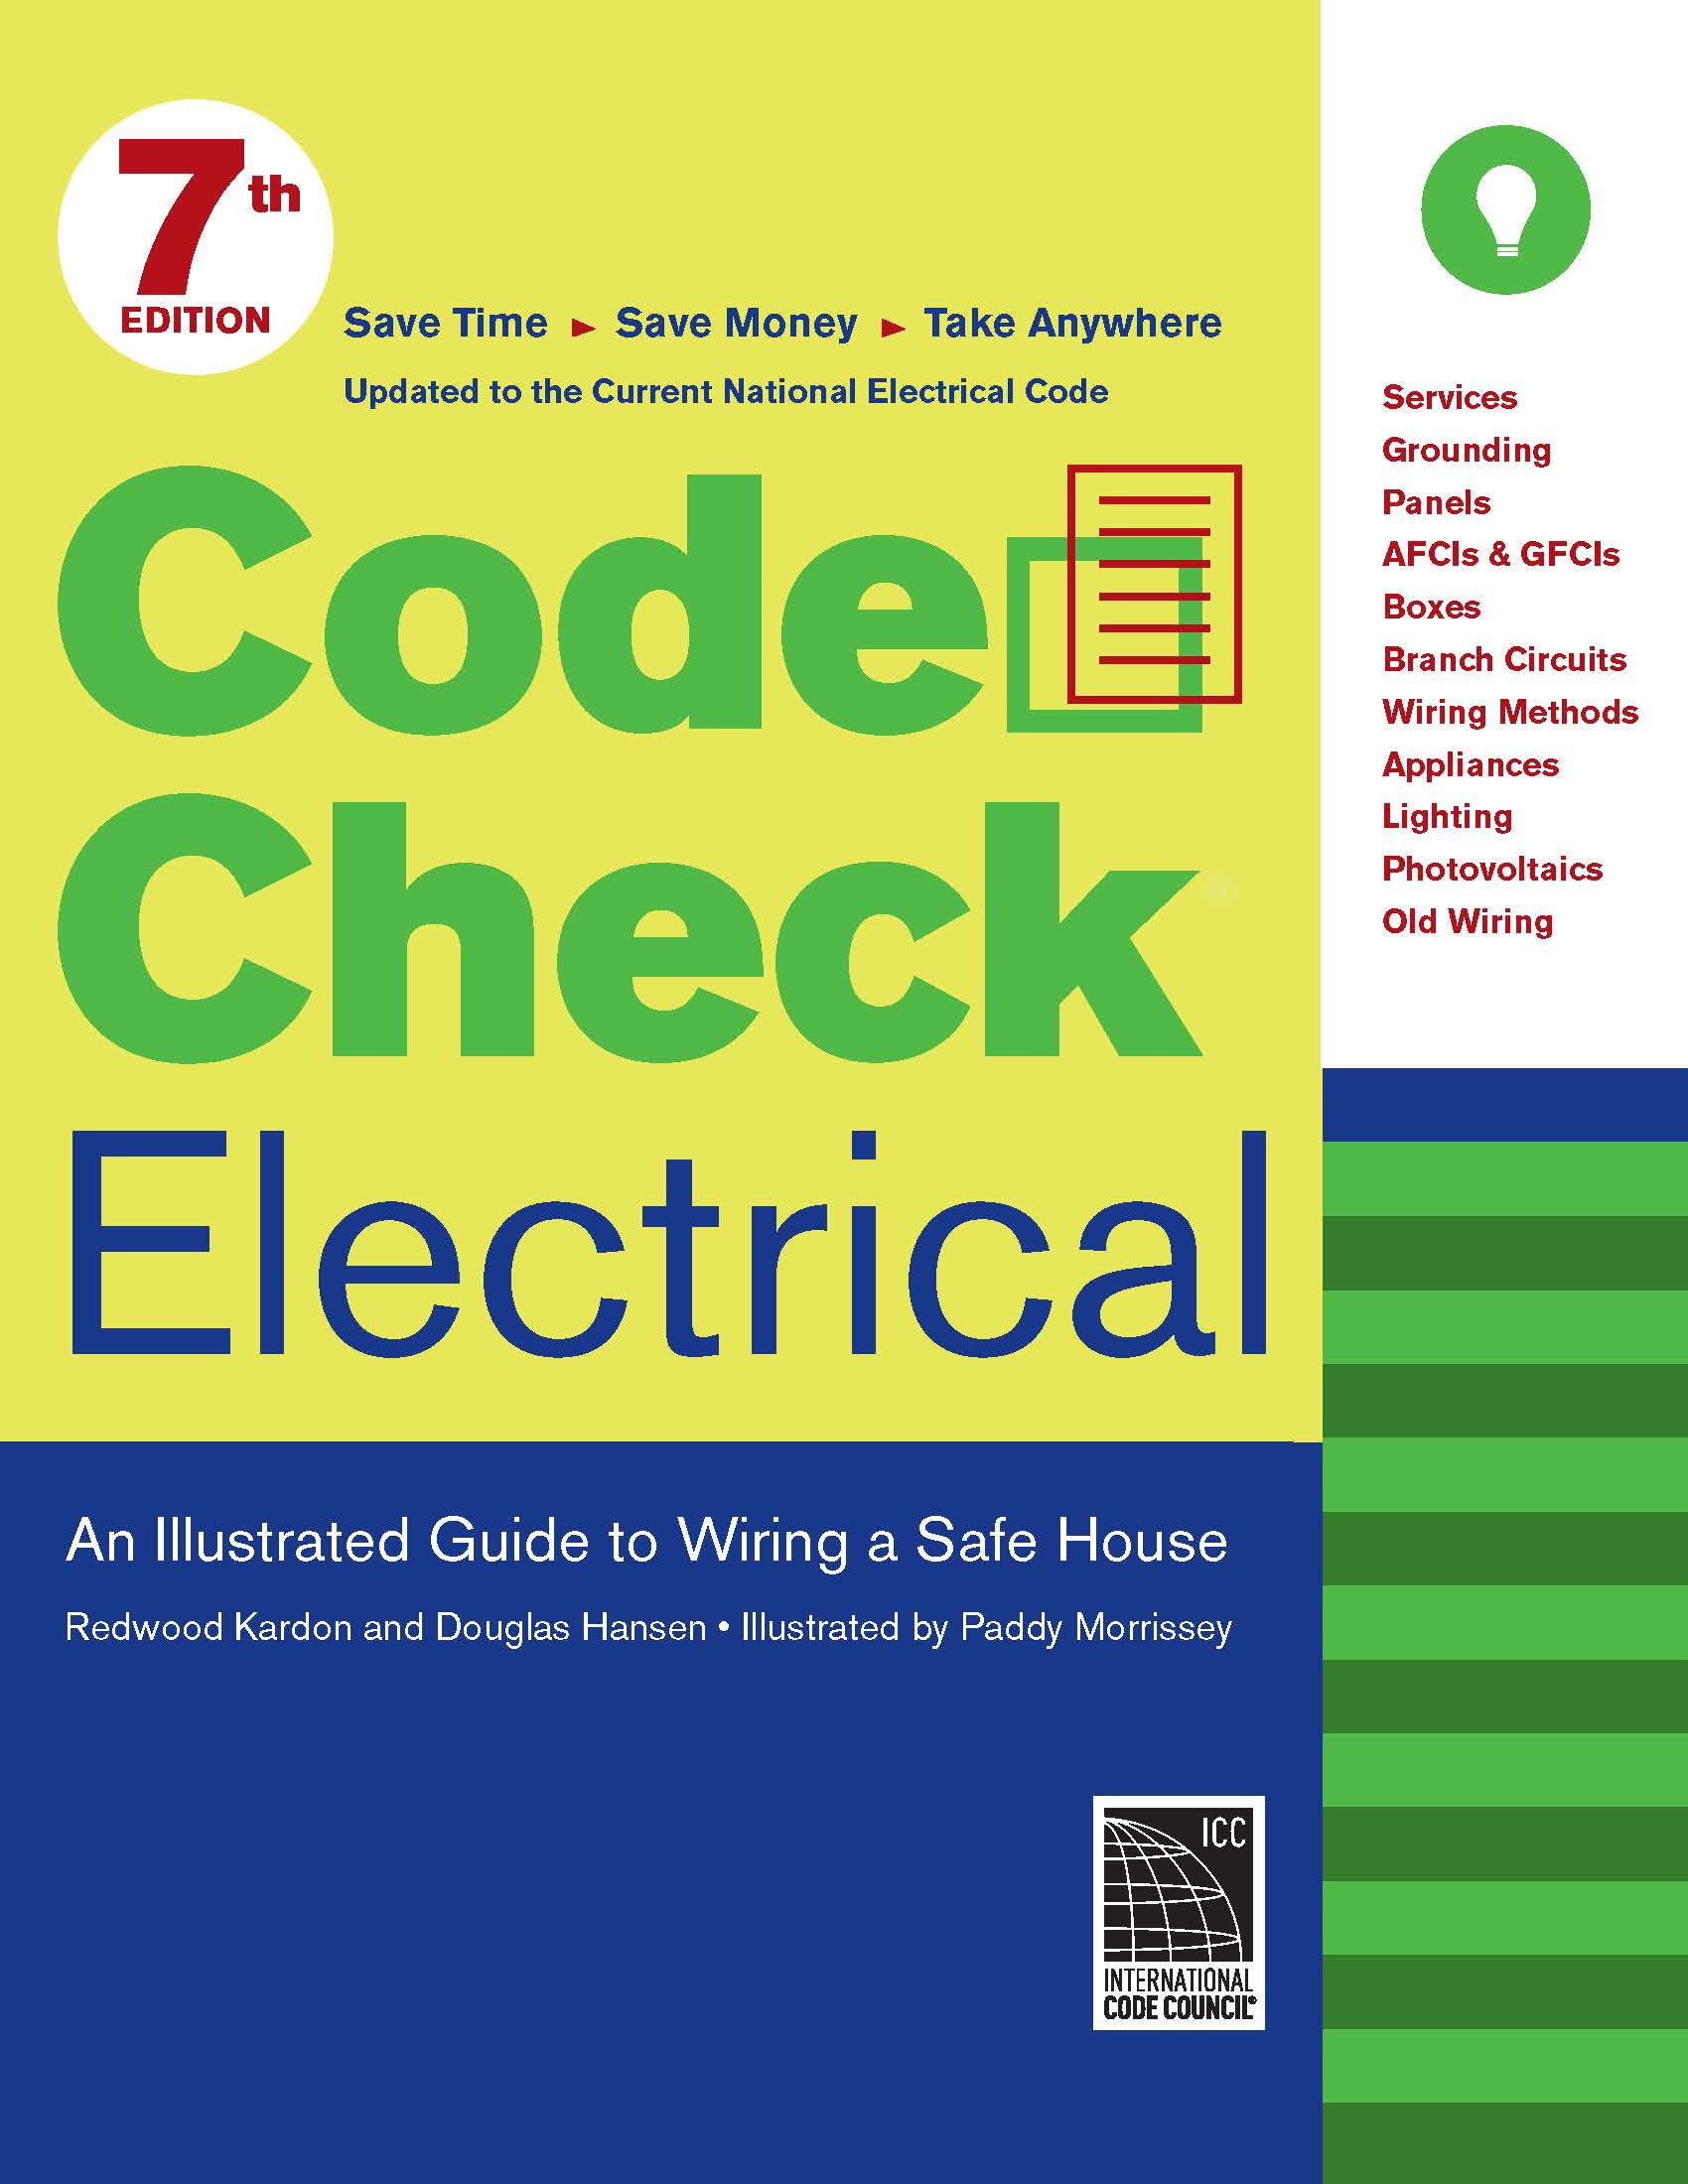 Code Check Electrical An Illustrated Guide To Wiring A Safe House Of Redwood Kardon Douglas Hansen Paddy Morrissey 9781621137788 Books